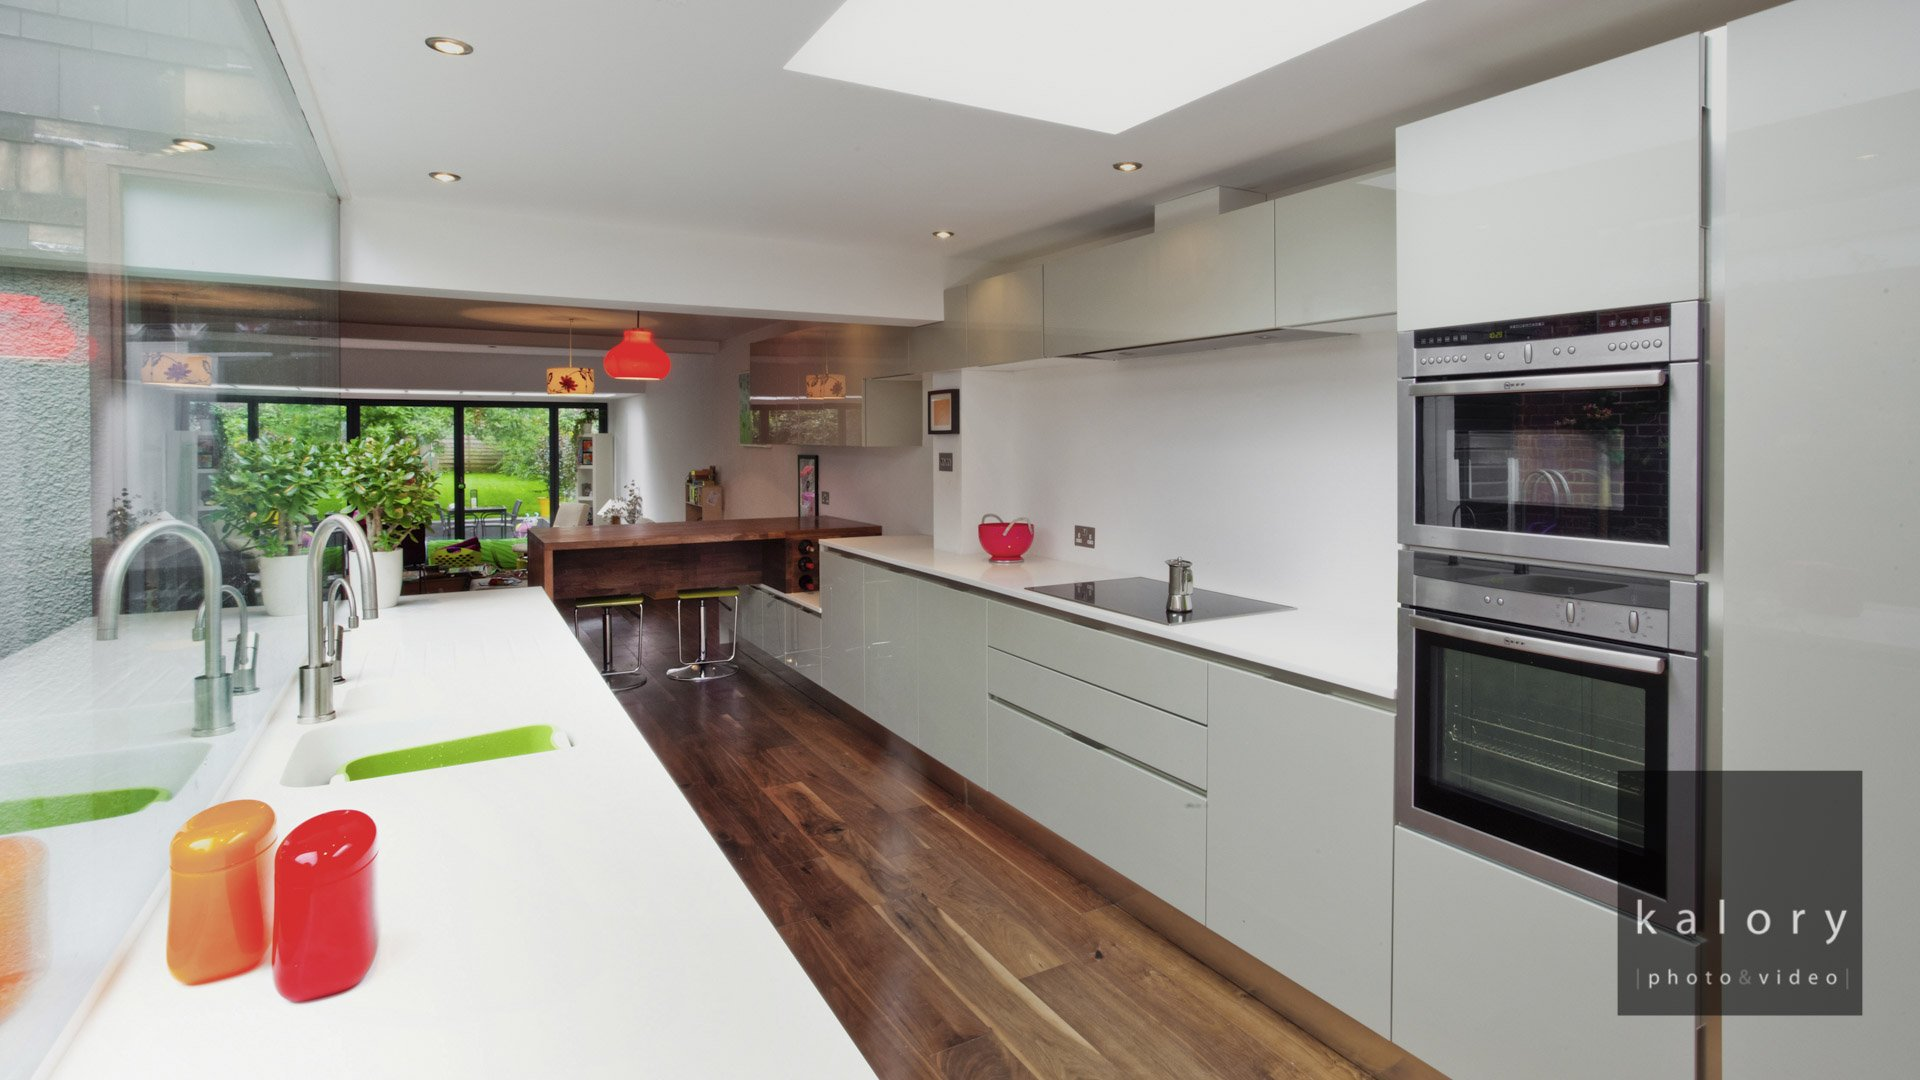 Kitchen designer photography